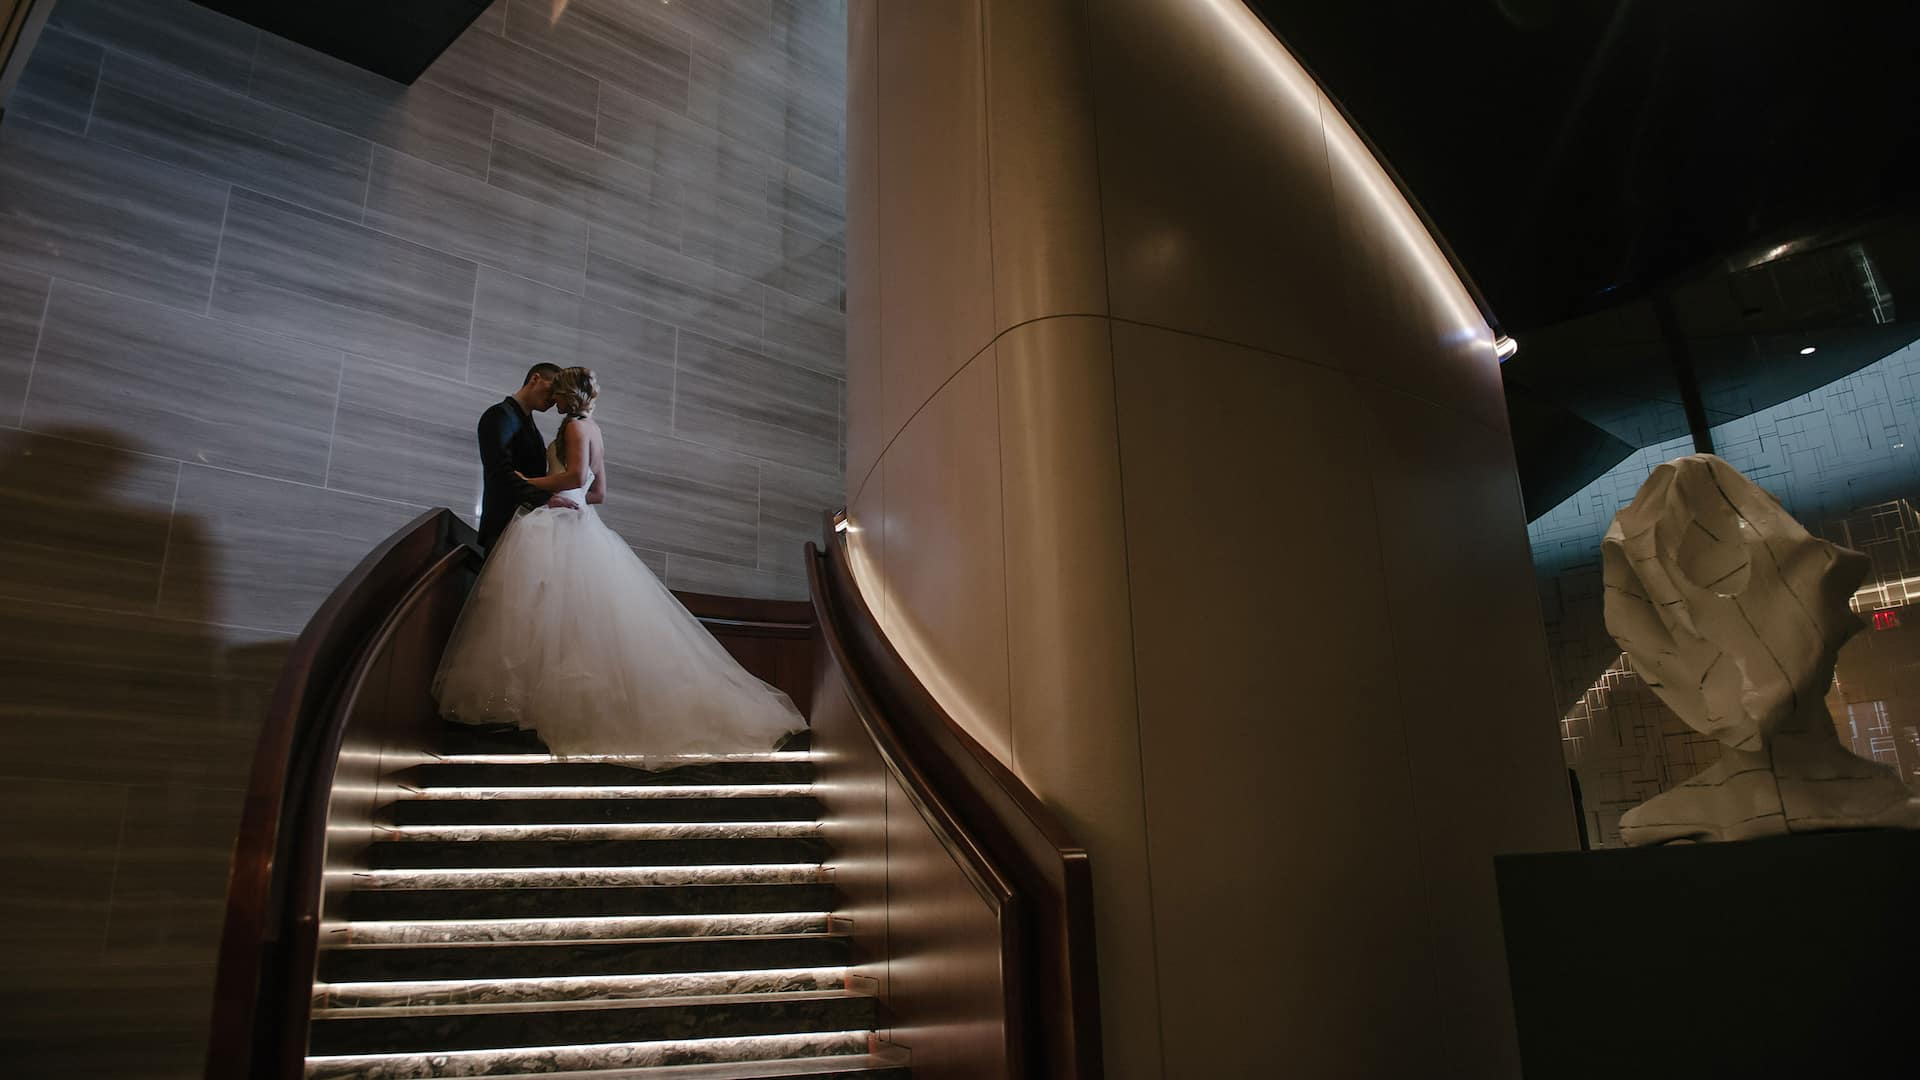 Bride and Groom Stairs.